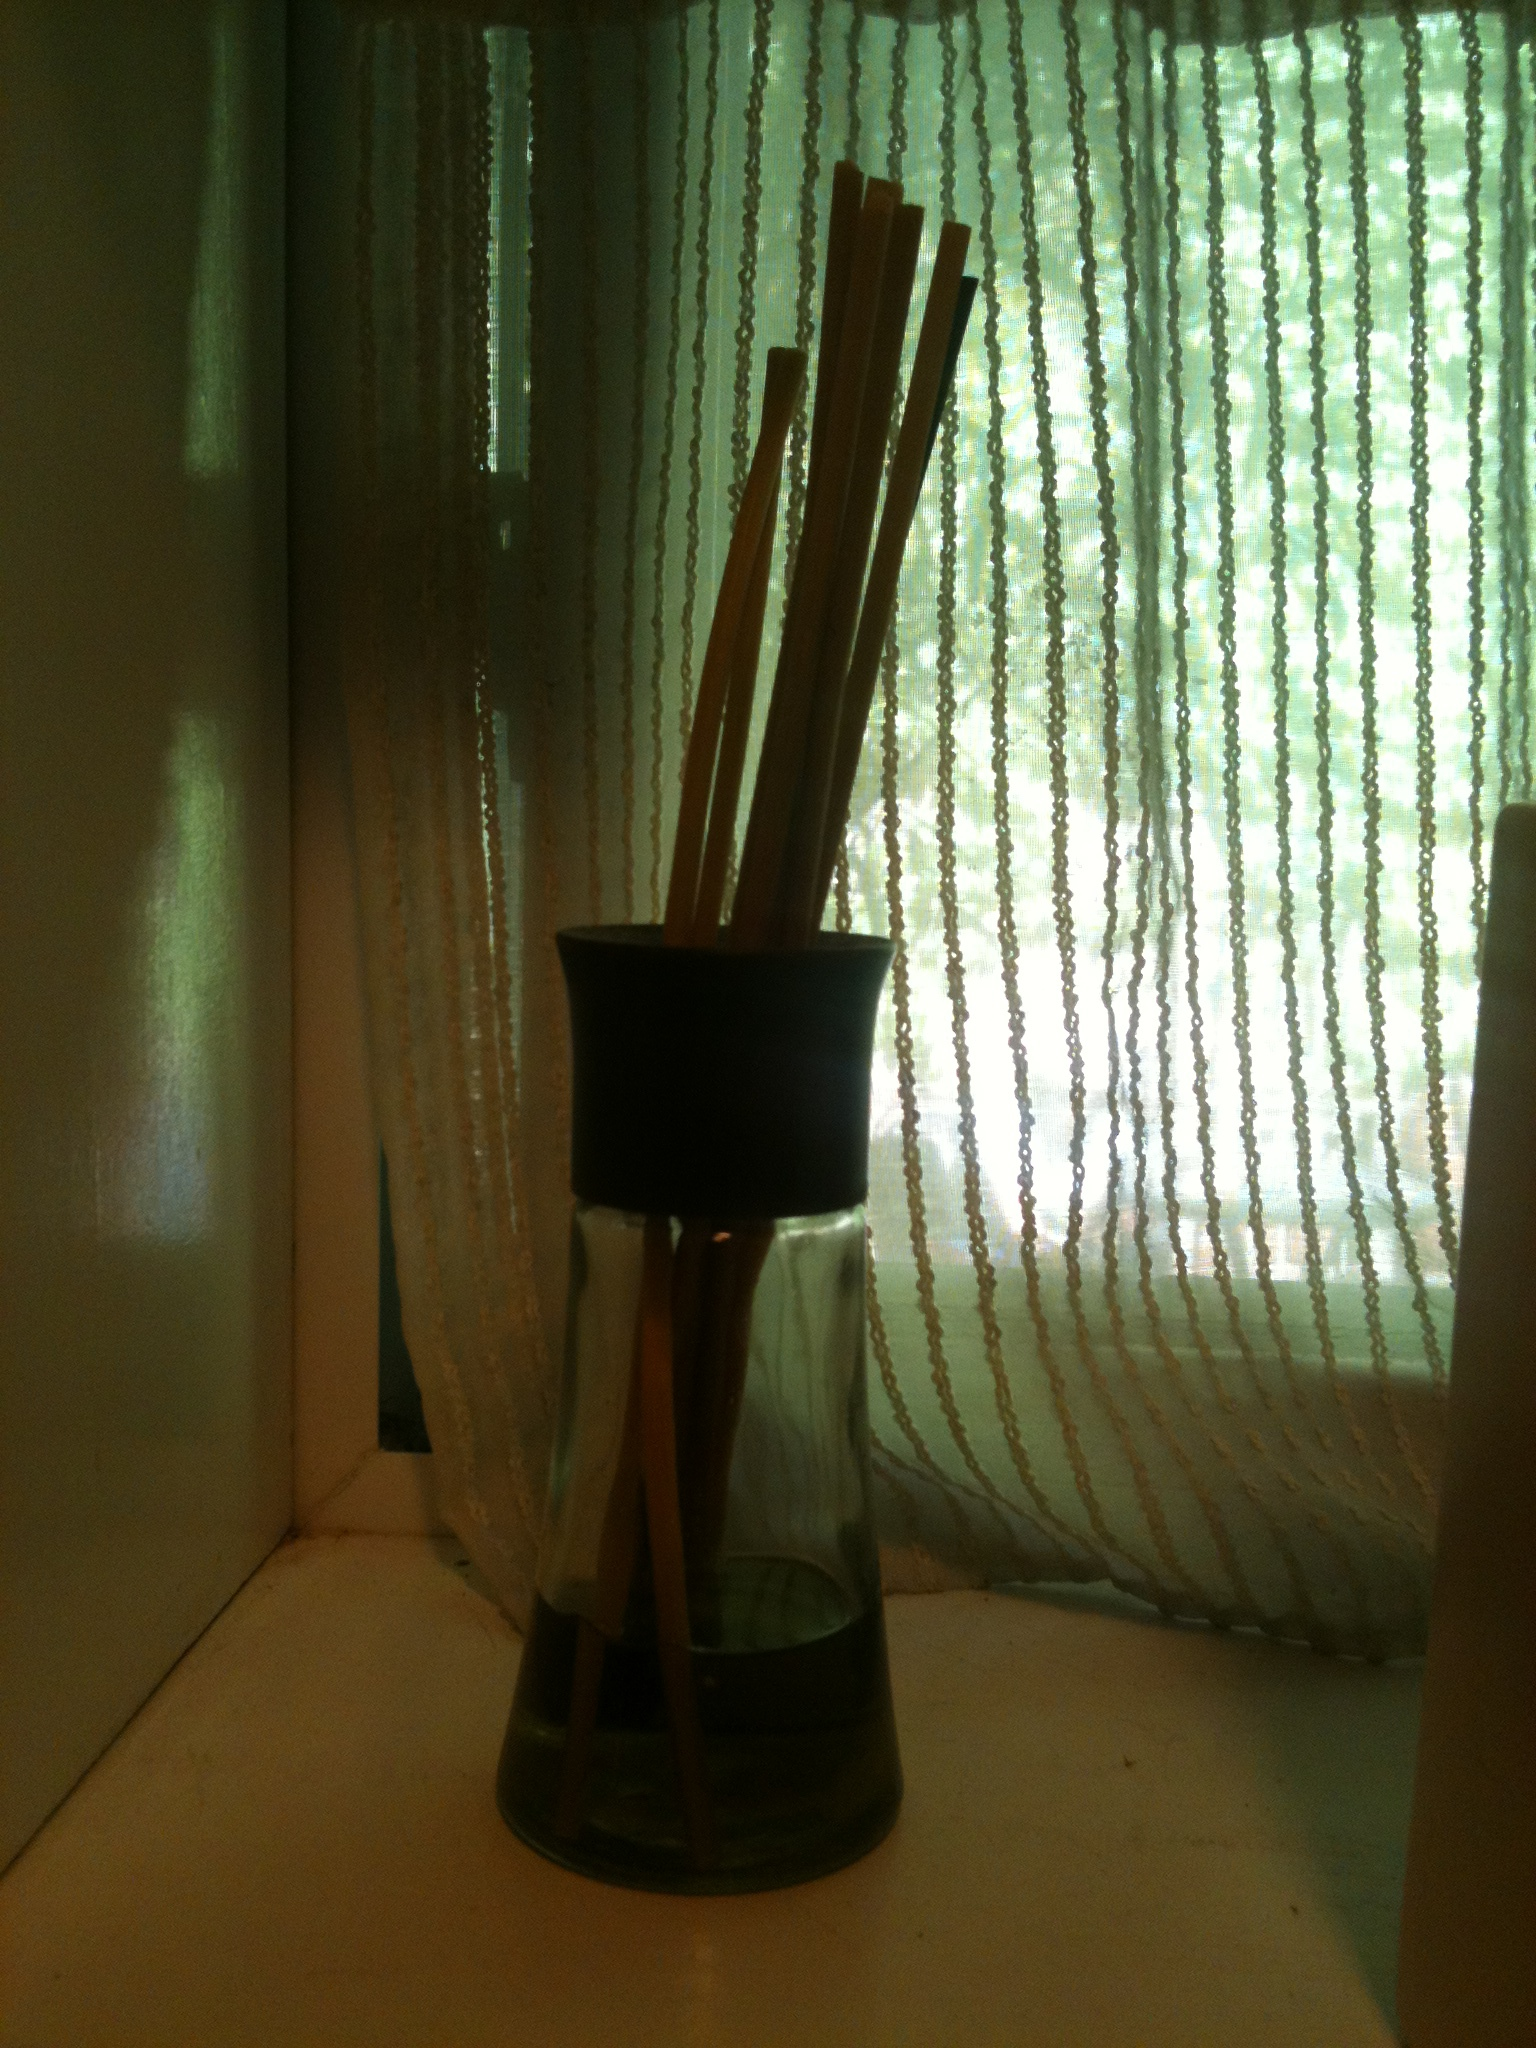 Reed diffuser feeling the flow, keeping it fresh